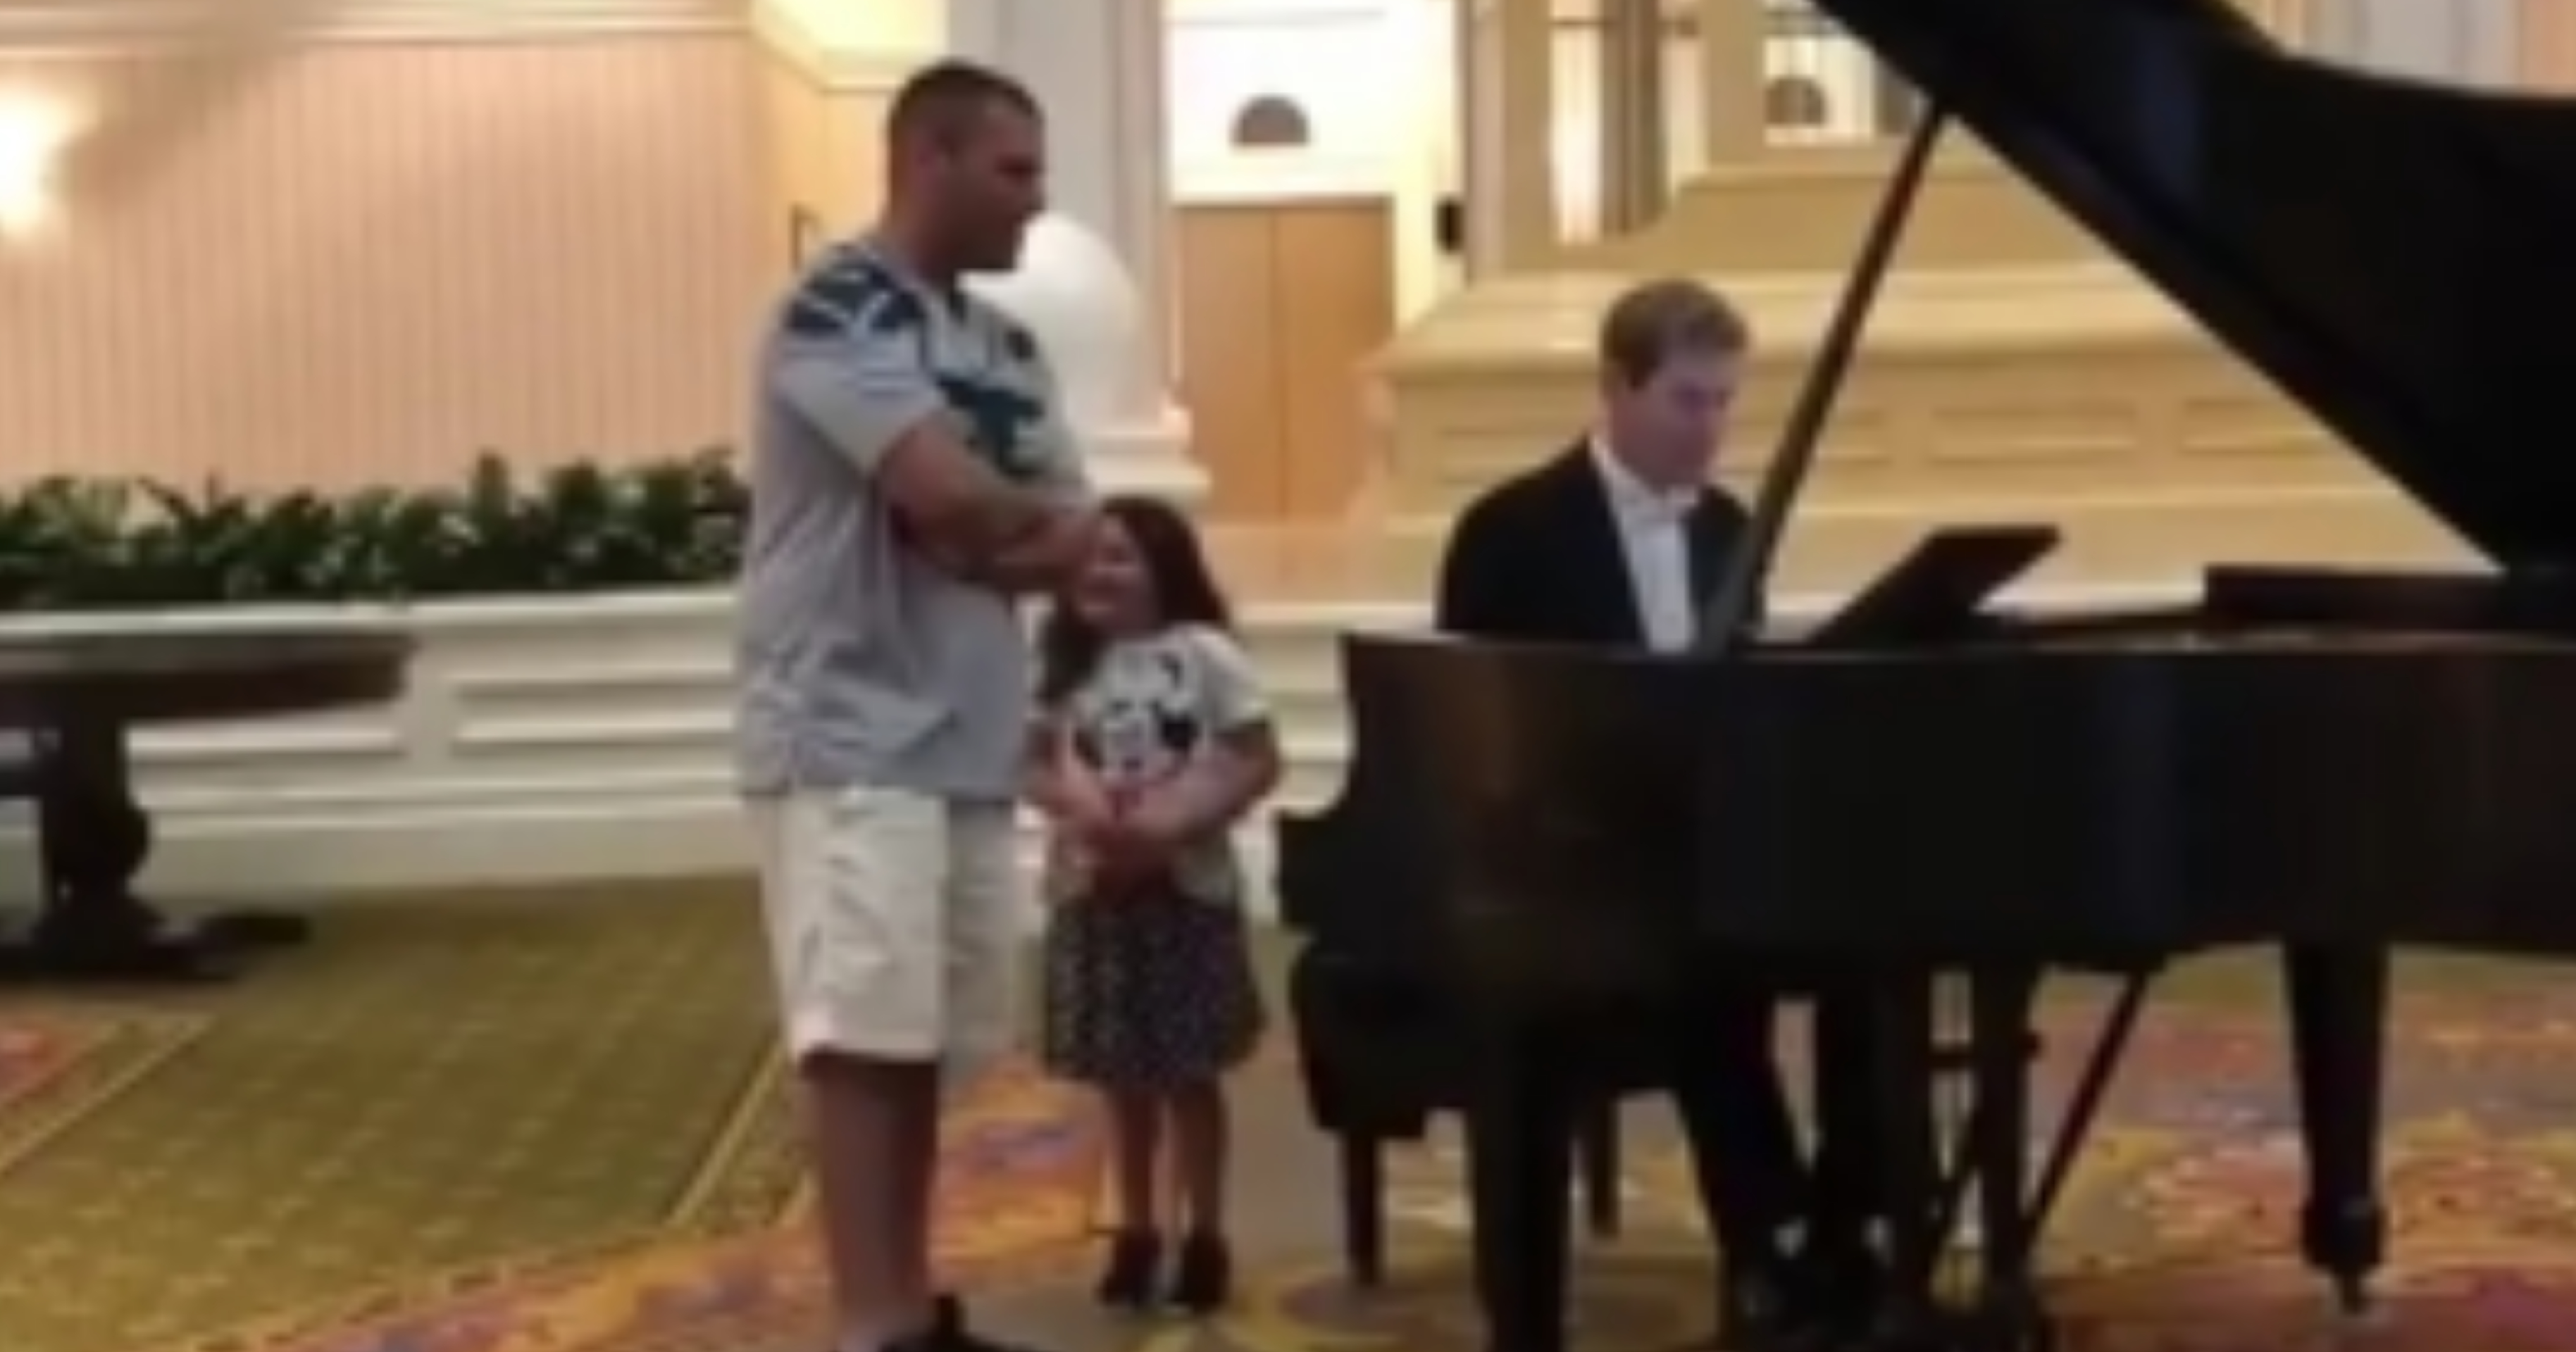 VIDEO: Man Blows Away Hotel Lobby Singing 'Ave Maria' for